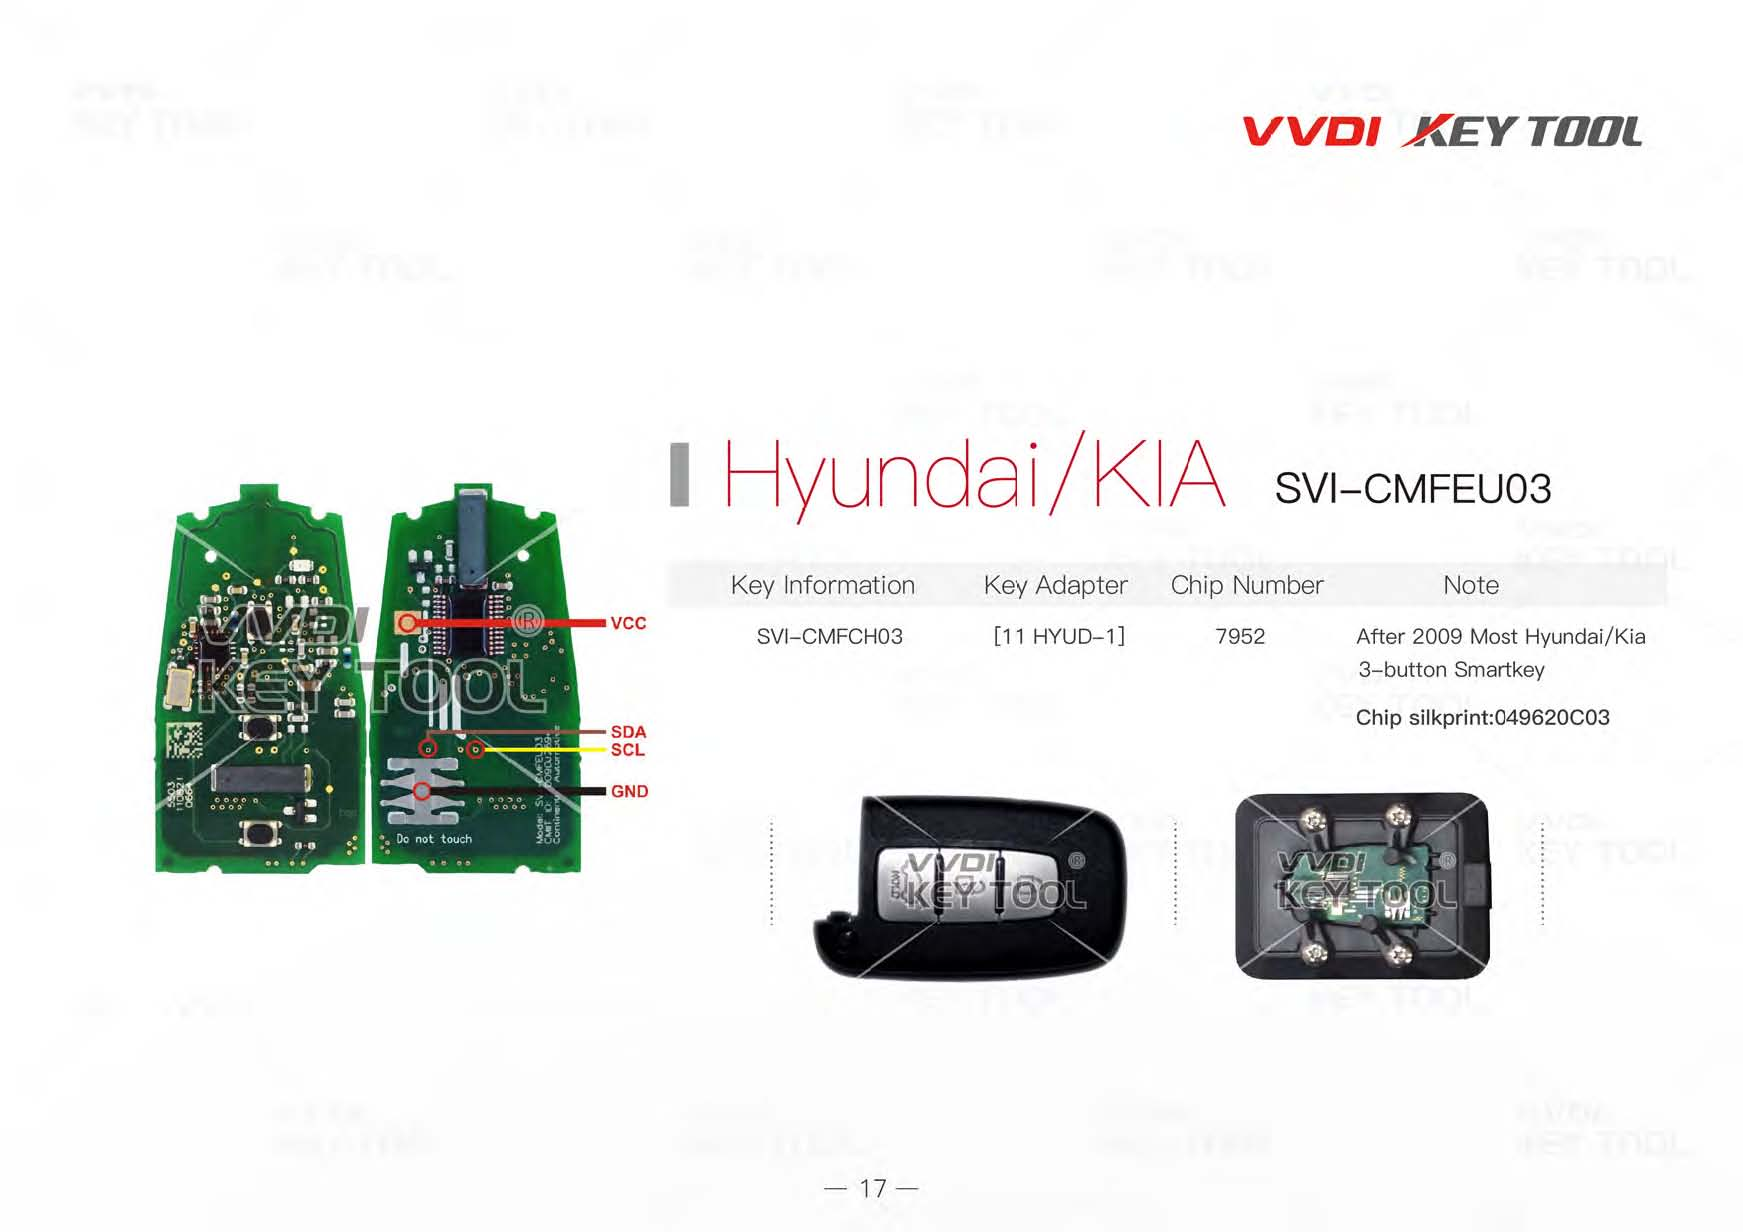 vvdi-key-tool-renew-diagram-17